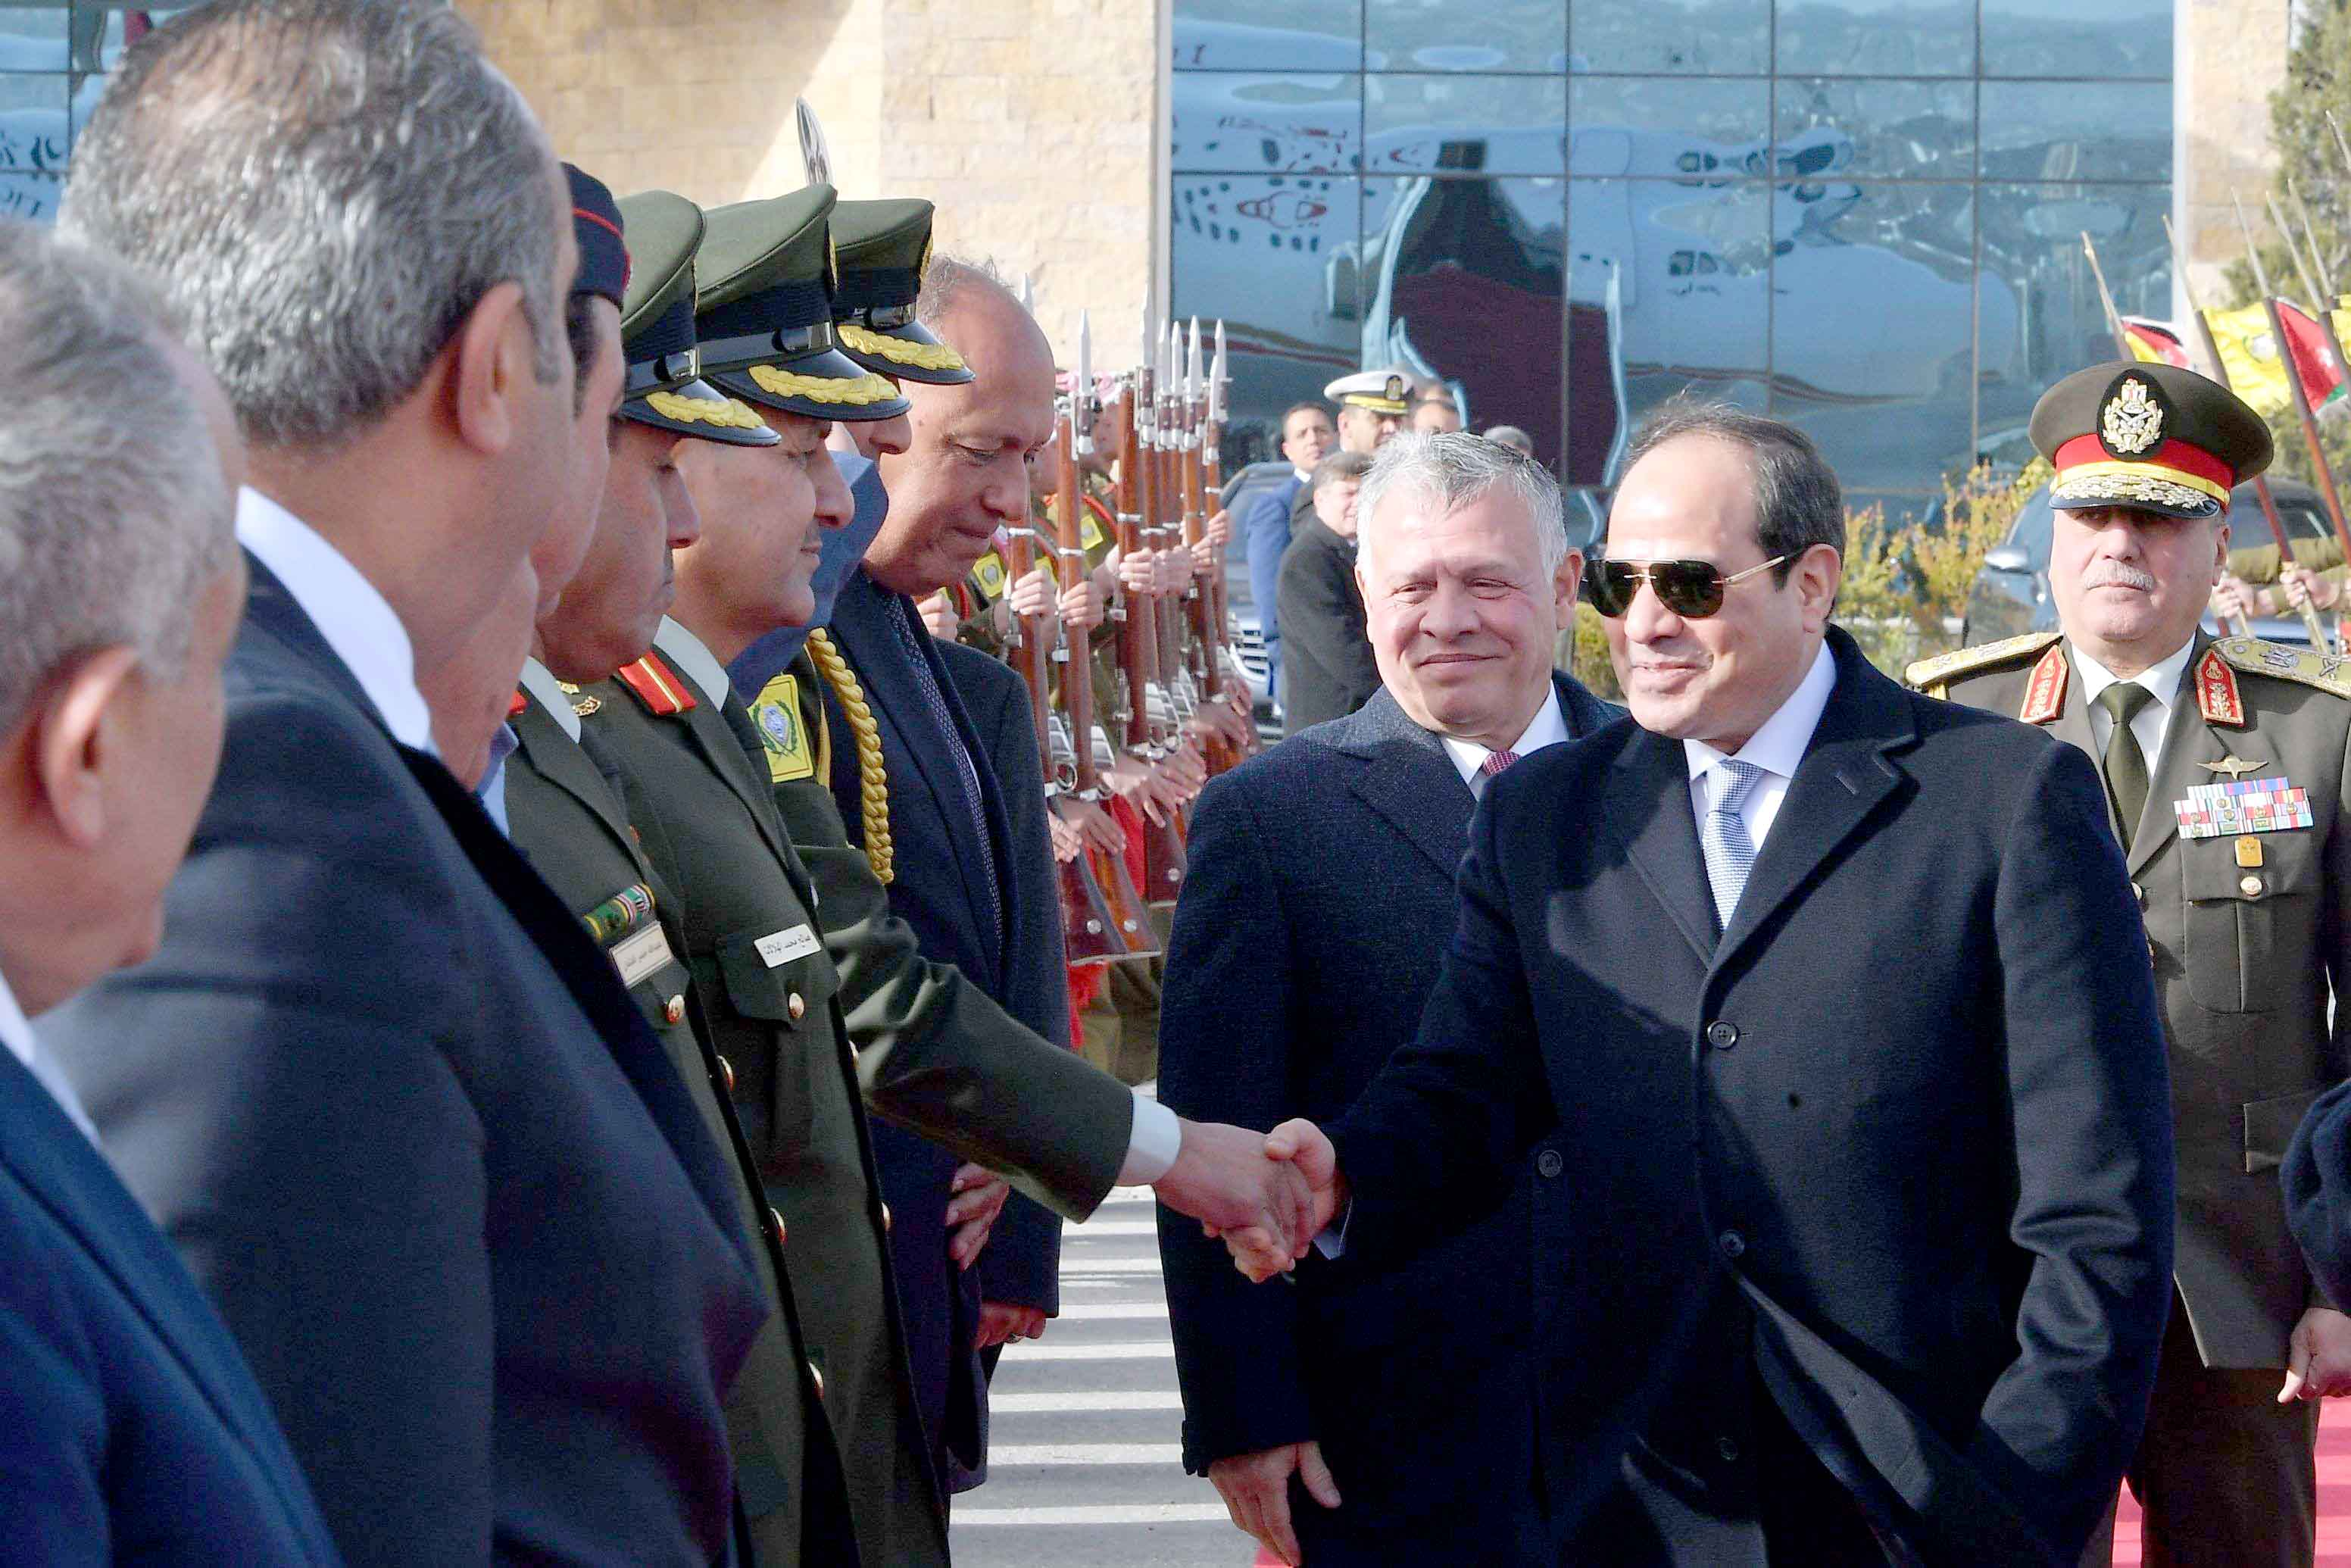 Searching for peace and security. Egyptian President Abdel Fattah al-Sisi (2nd-R) and Jordanian King Abdullah II (3rd-R) at a welcoming ceremony in Amman, January 13.(AFP)